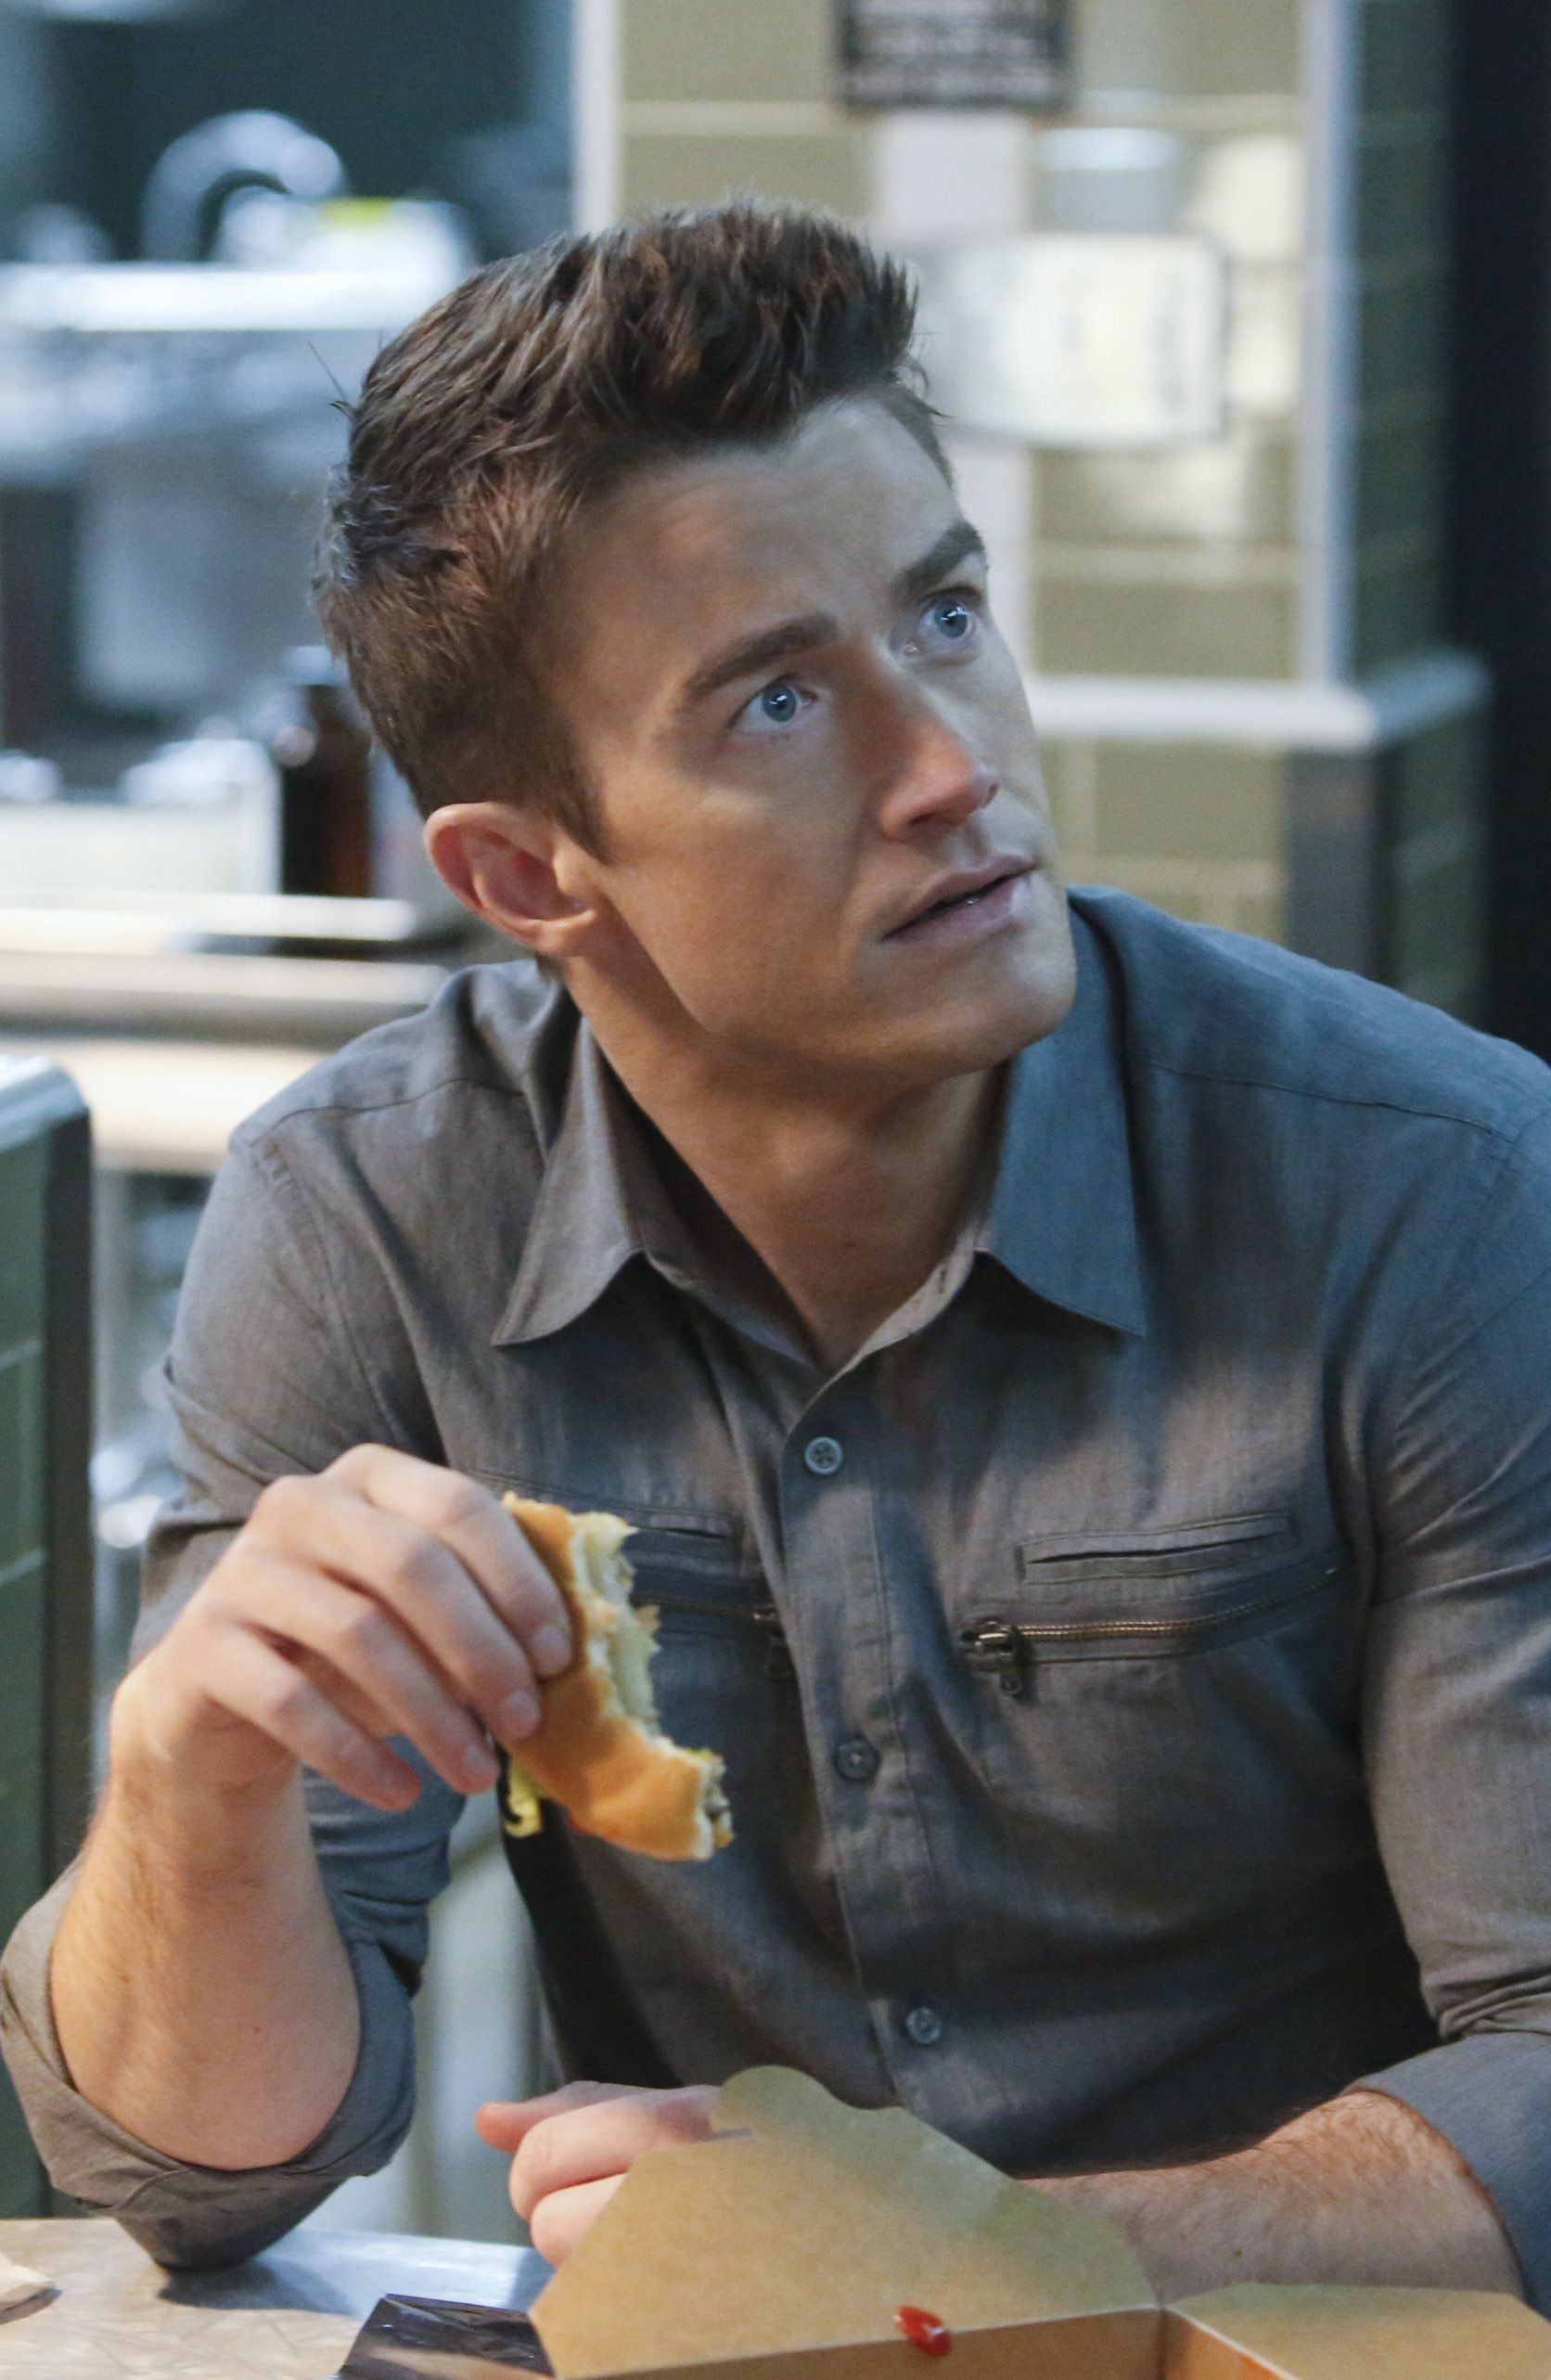 iZombie 2x12 - Major Lilywhite (Robert Buckley) HQ